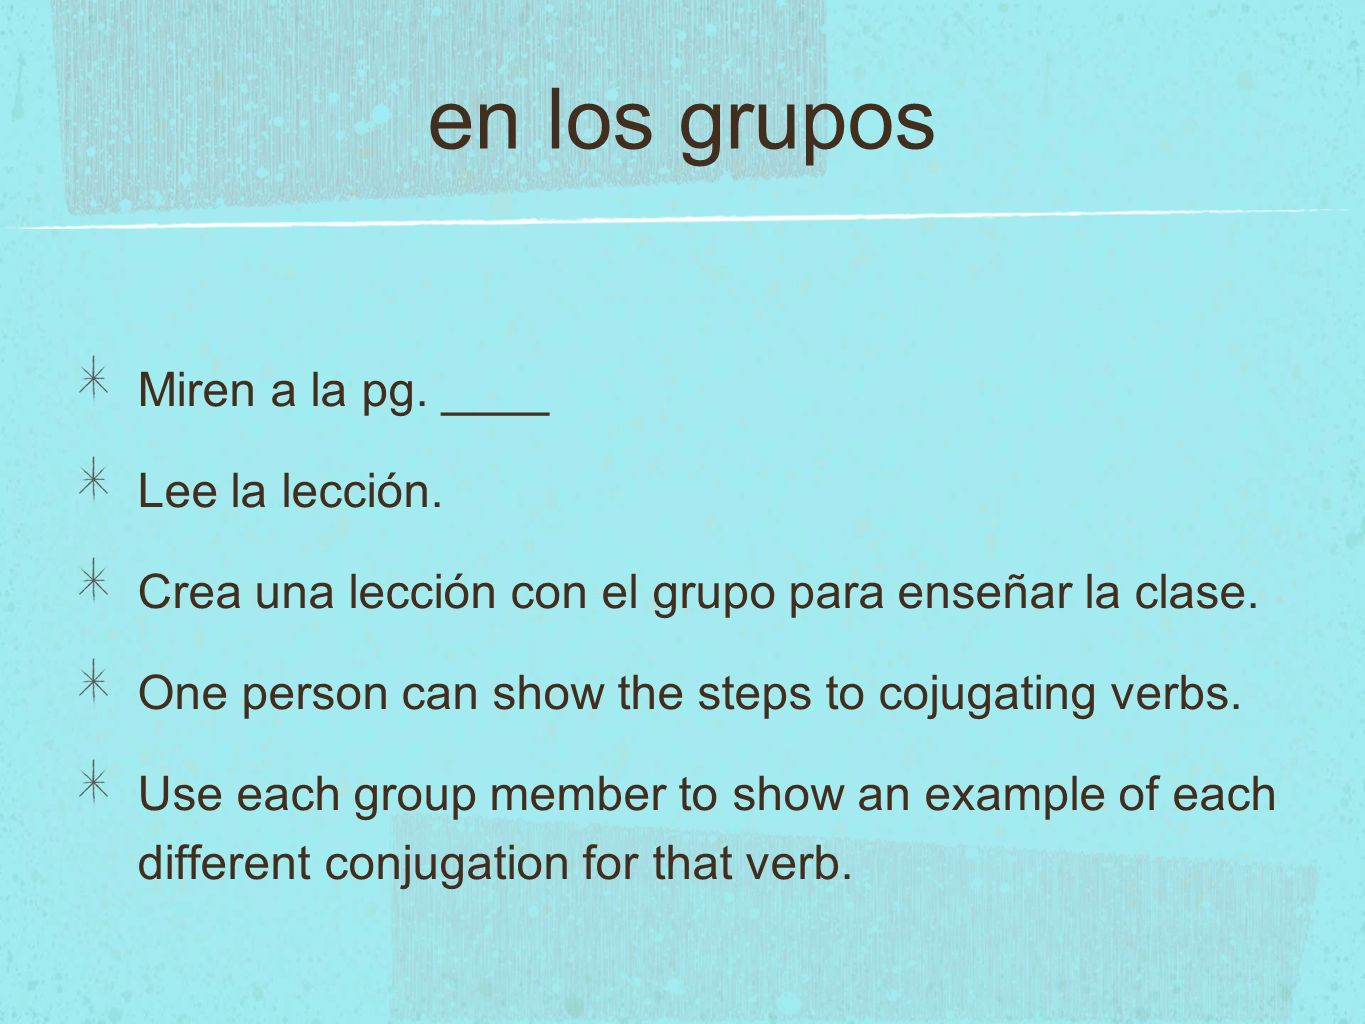 Leccion Read part one of pg 138 and answer the questions or commands.